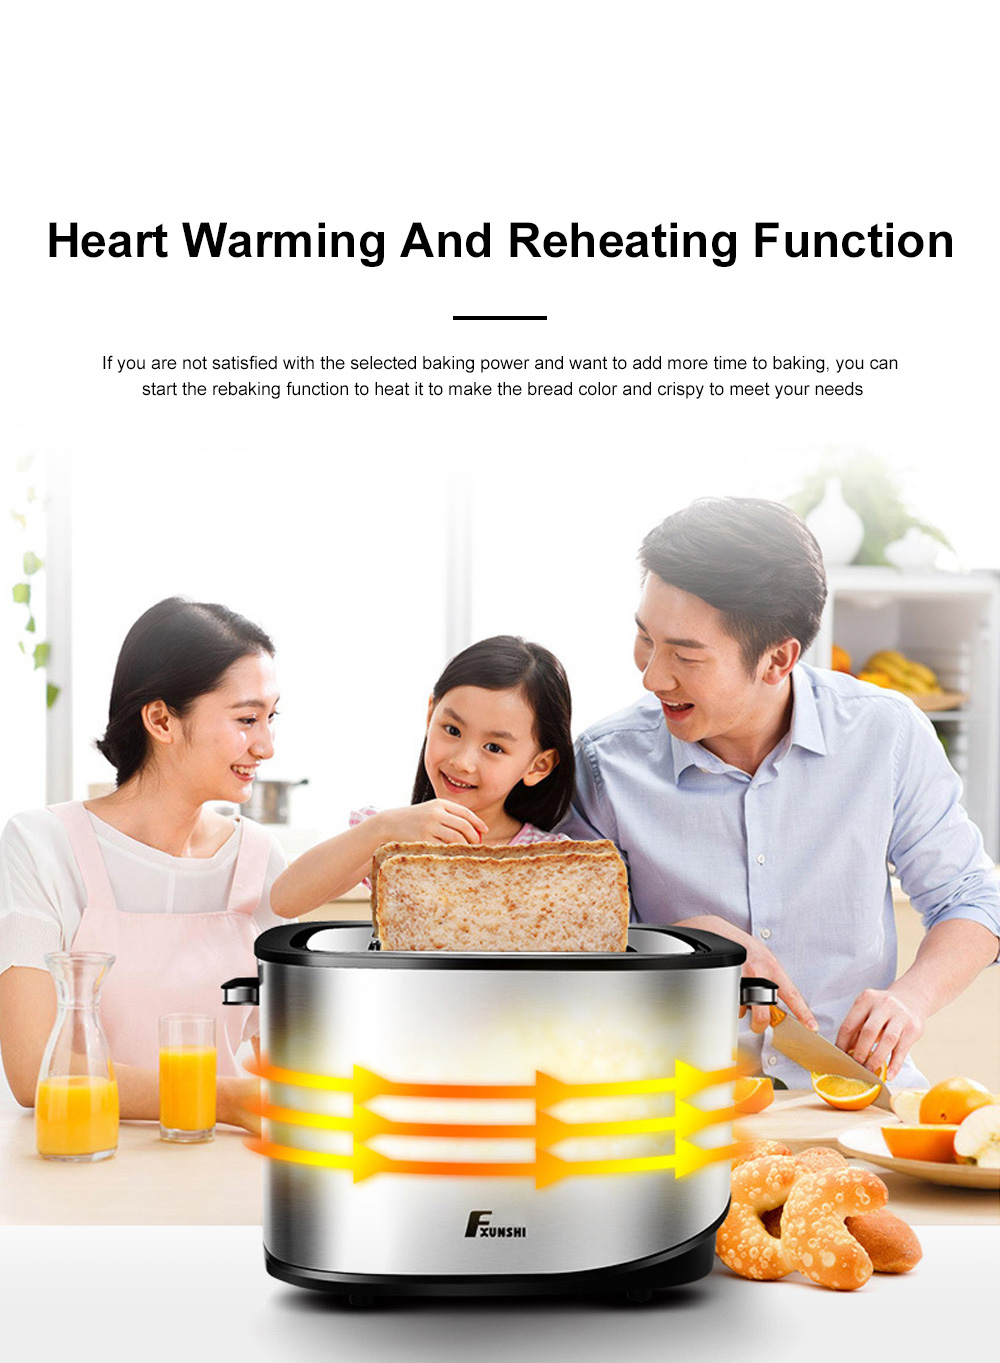 Fxunshi 800W Power Home Appliance Stainless Steel Auto Switch Off 2 Slices 2 Slot Portable Automatic Bread Maker Toaster 9